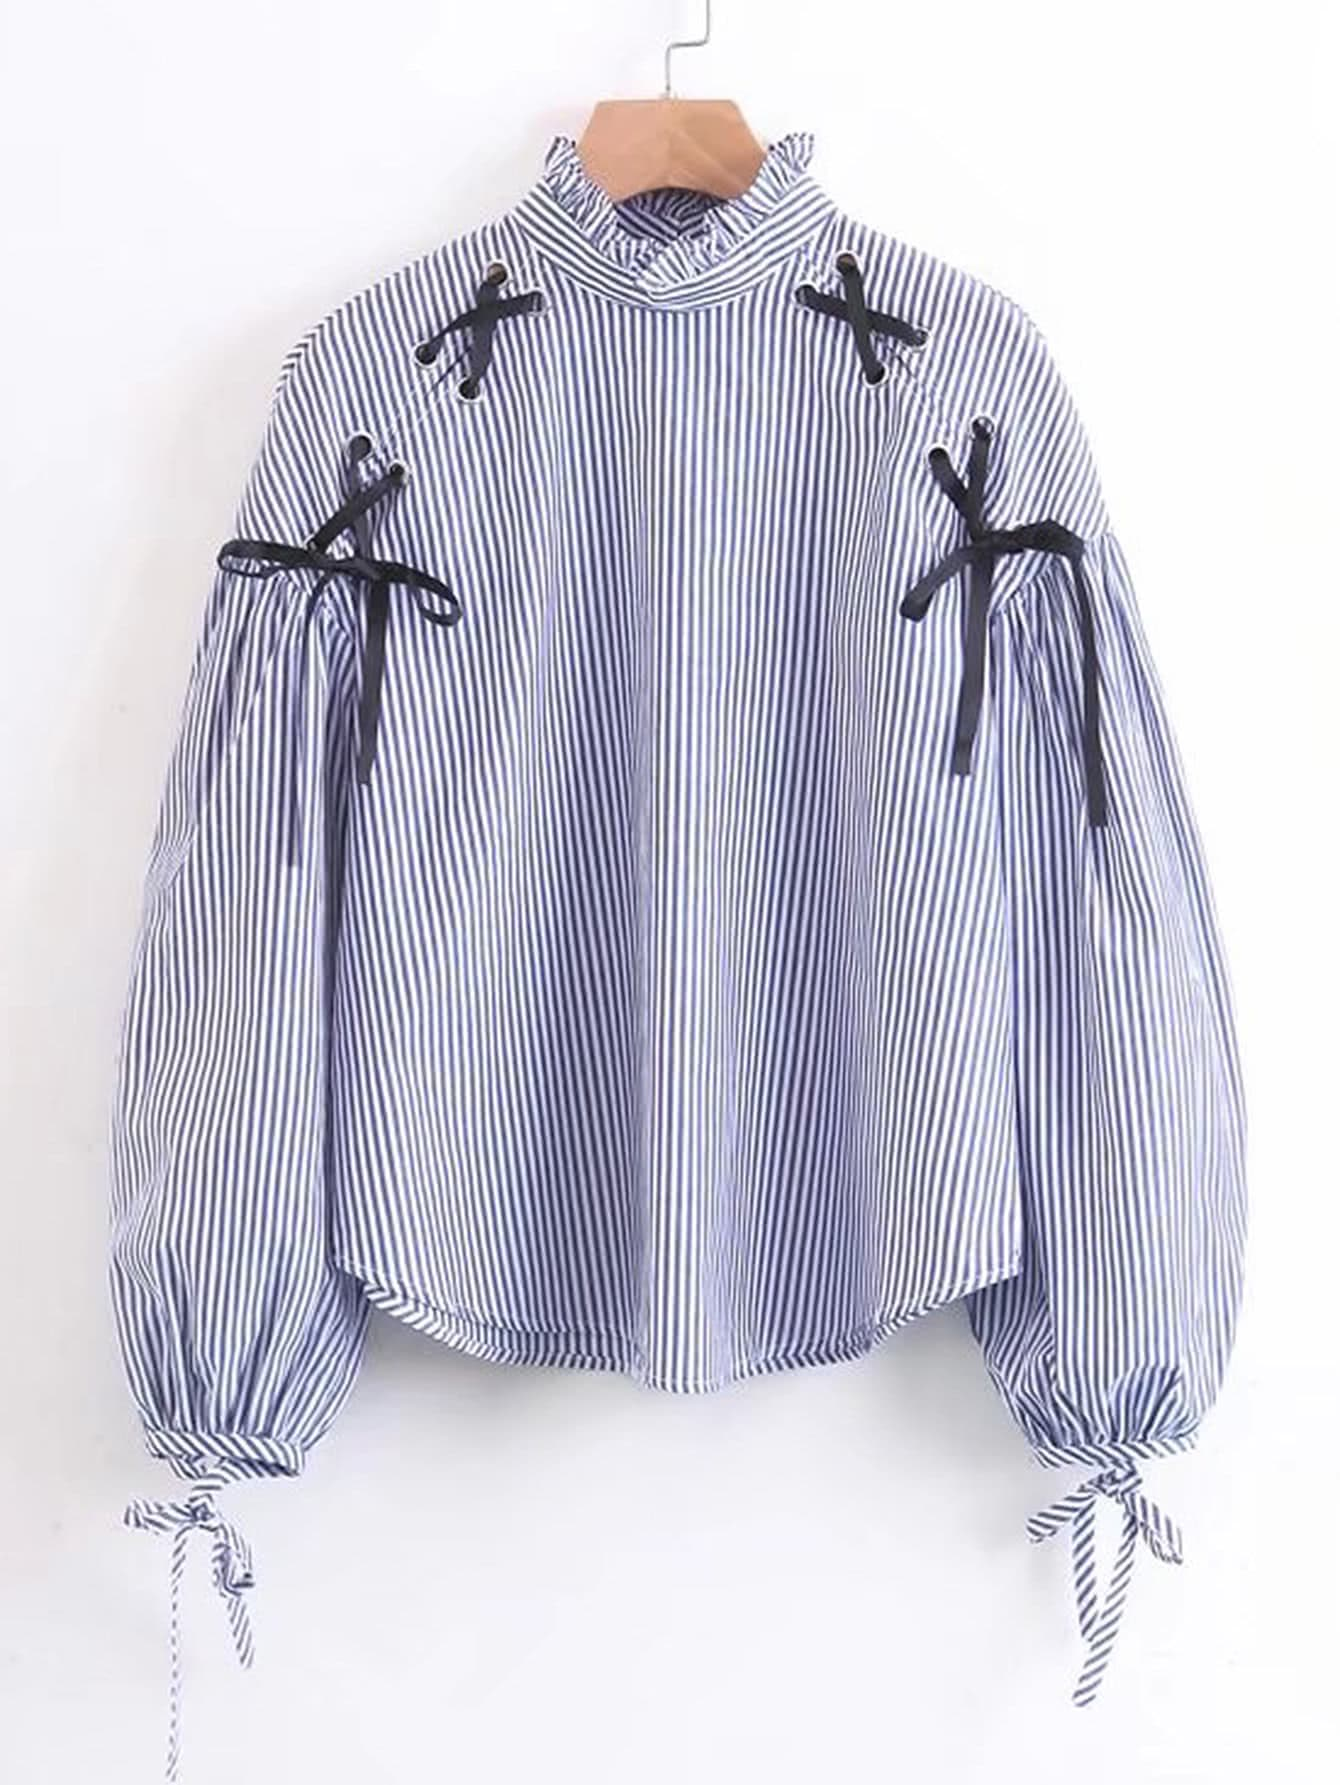 Contrast Lace Up Frill Neck Striped Blouse blouse170901201